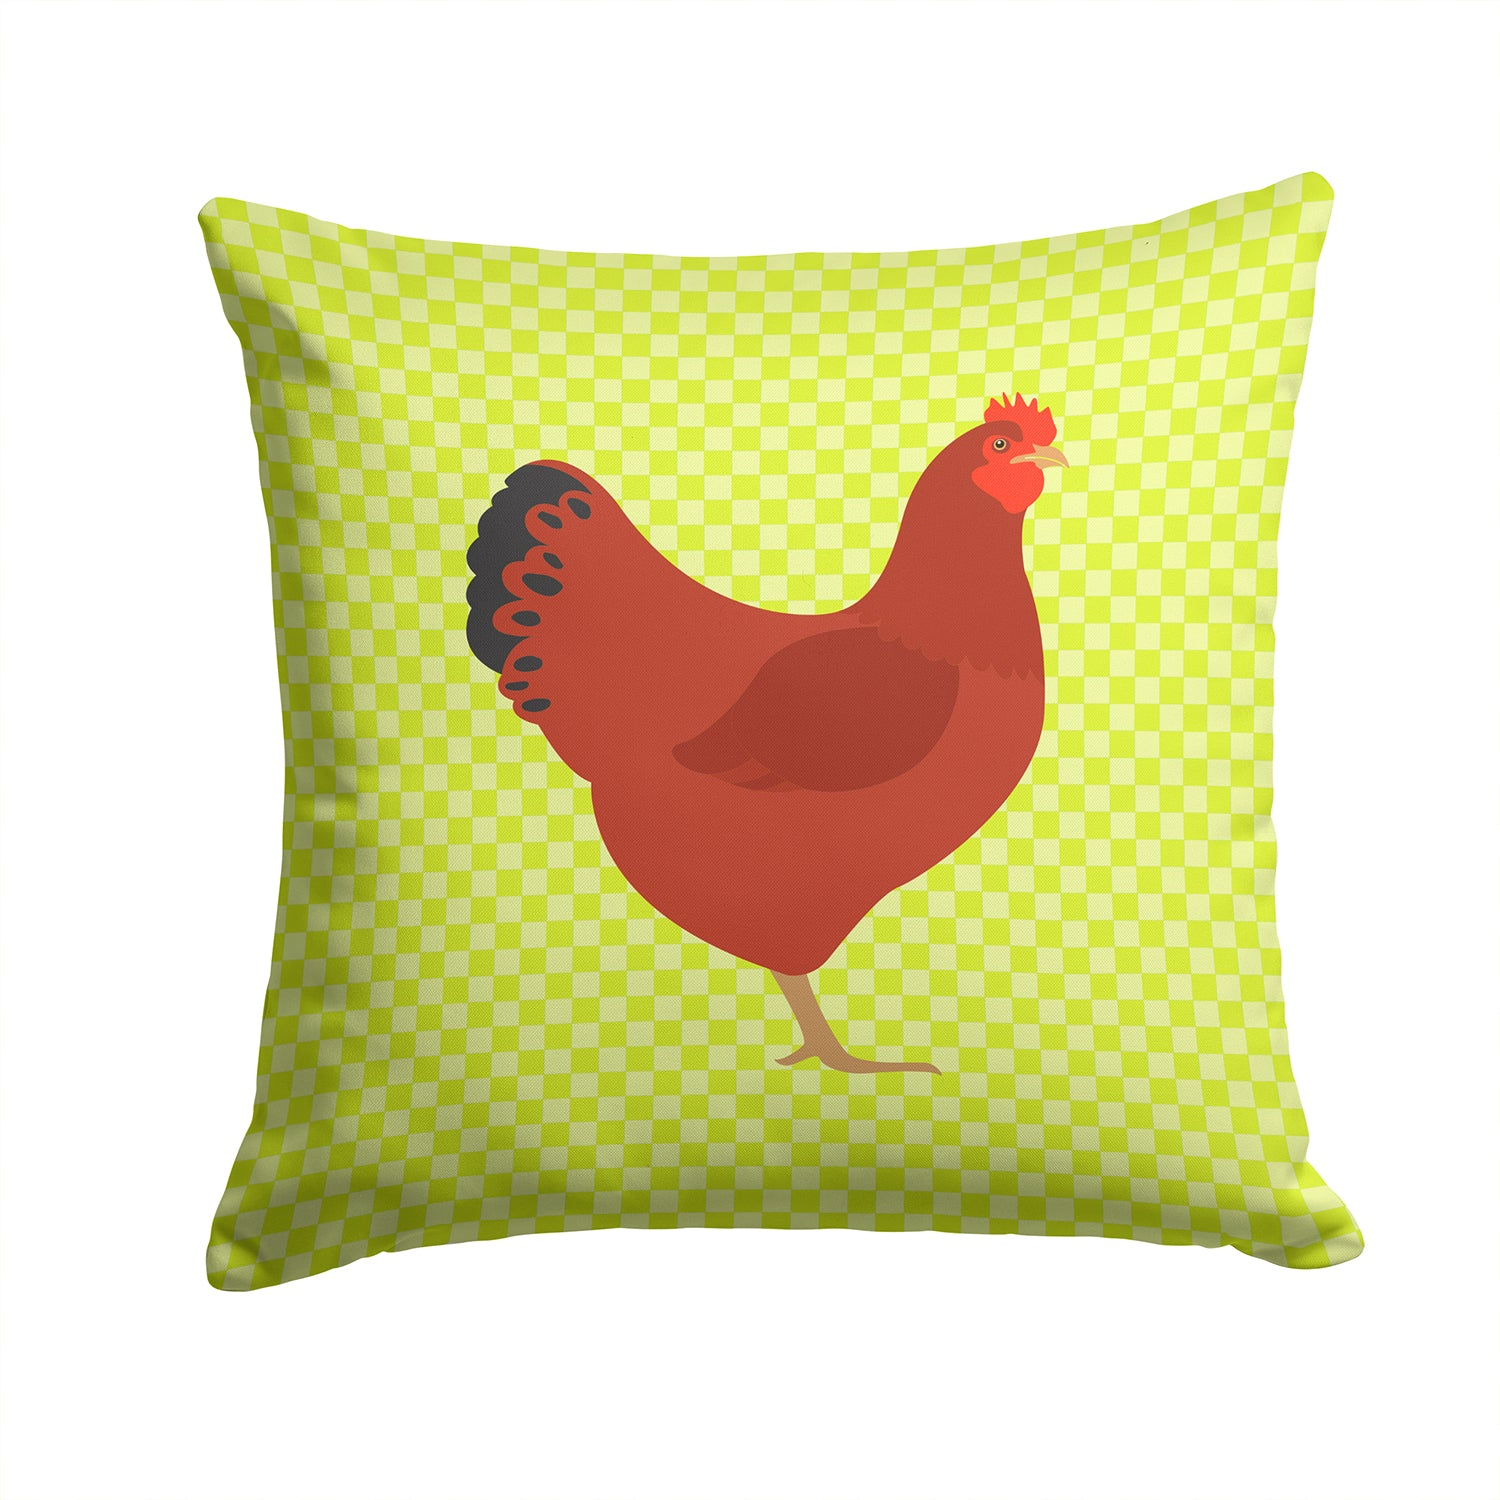 New Hampshire Red Chicken Green Fabric Decorative Pillow BB7669PW1414 by Caroline's Treasures